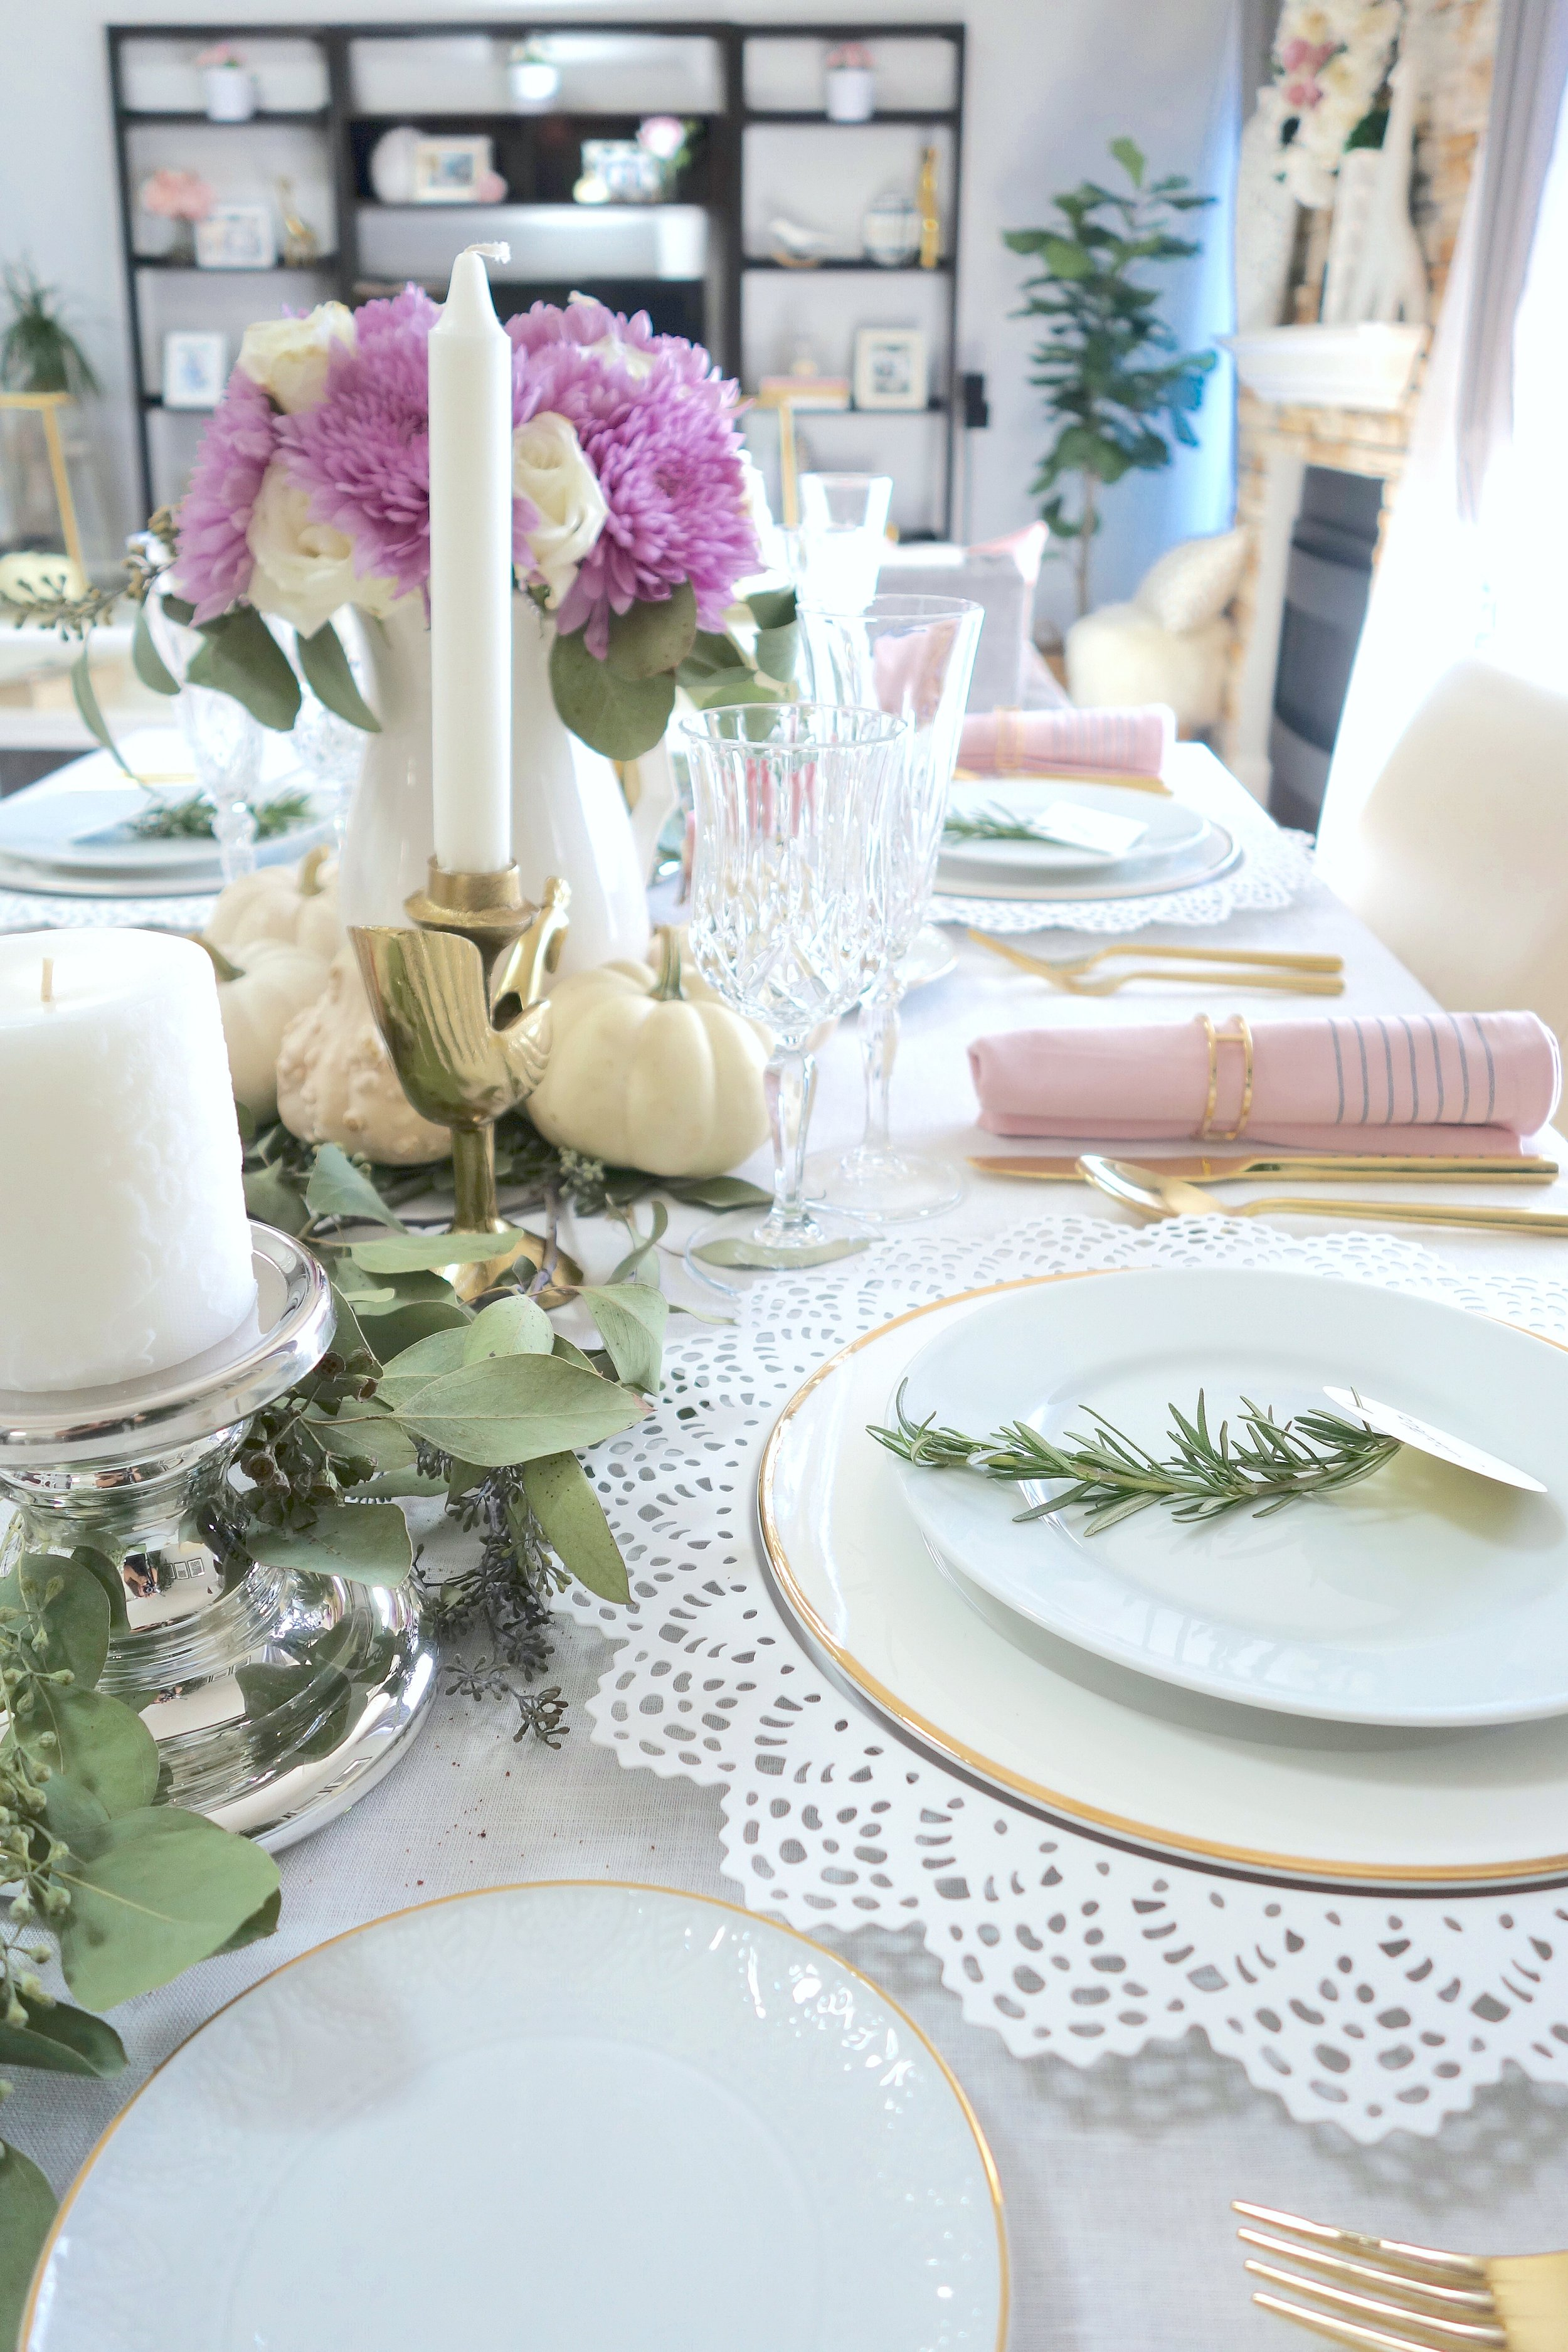 Susana's table is pretty & pink!!! Brilliant!